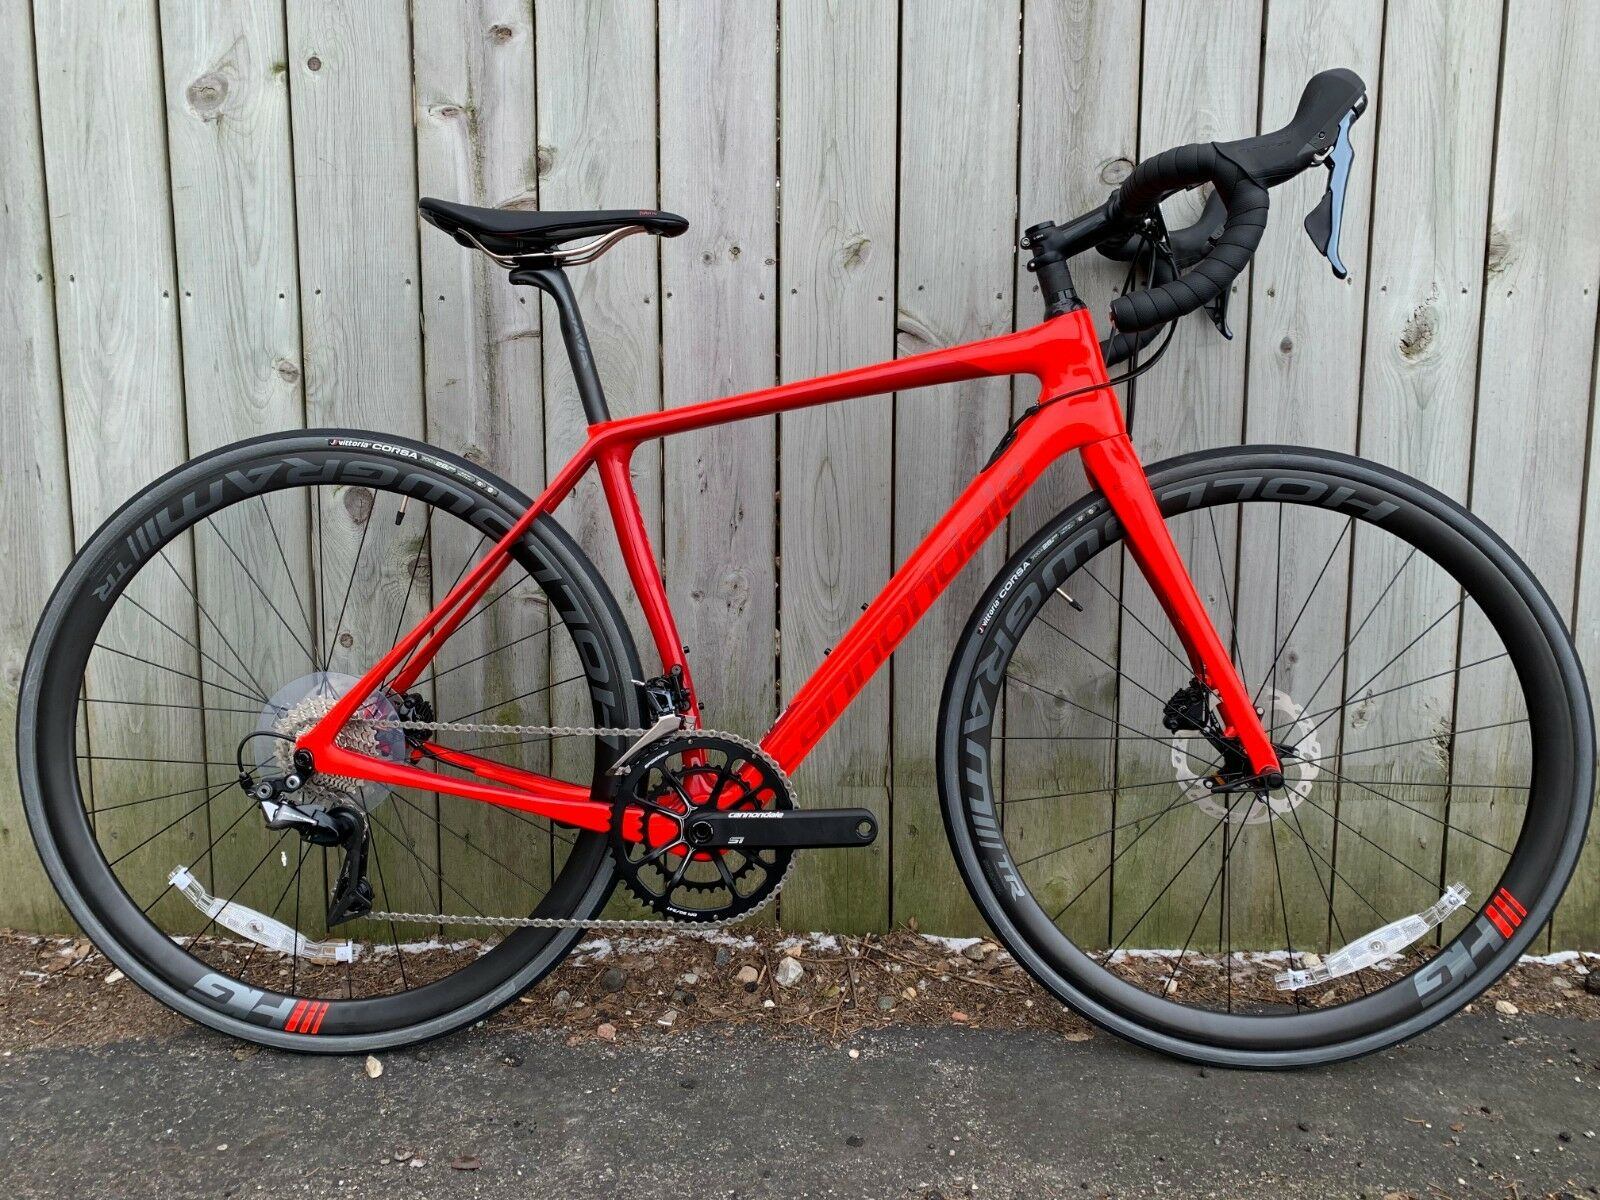 6f067666a7d Find Cannondale Road Bikes for sale